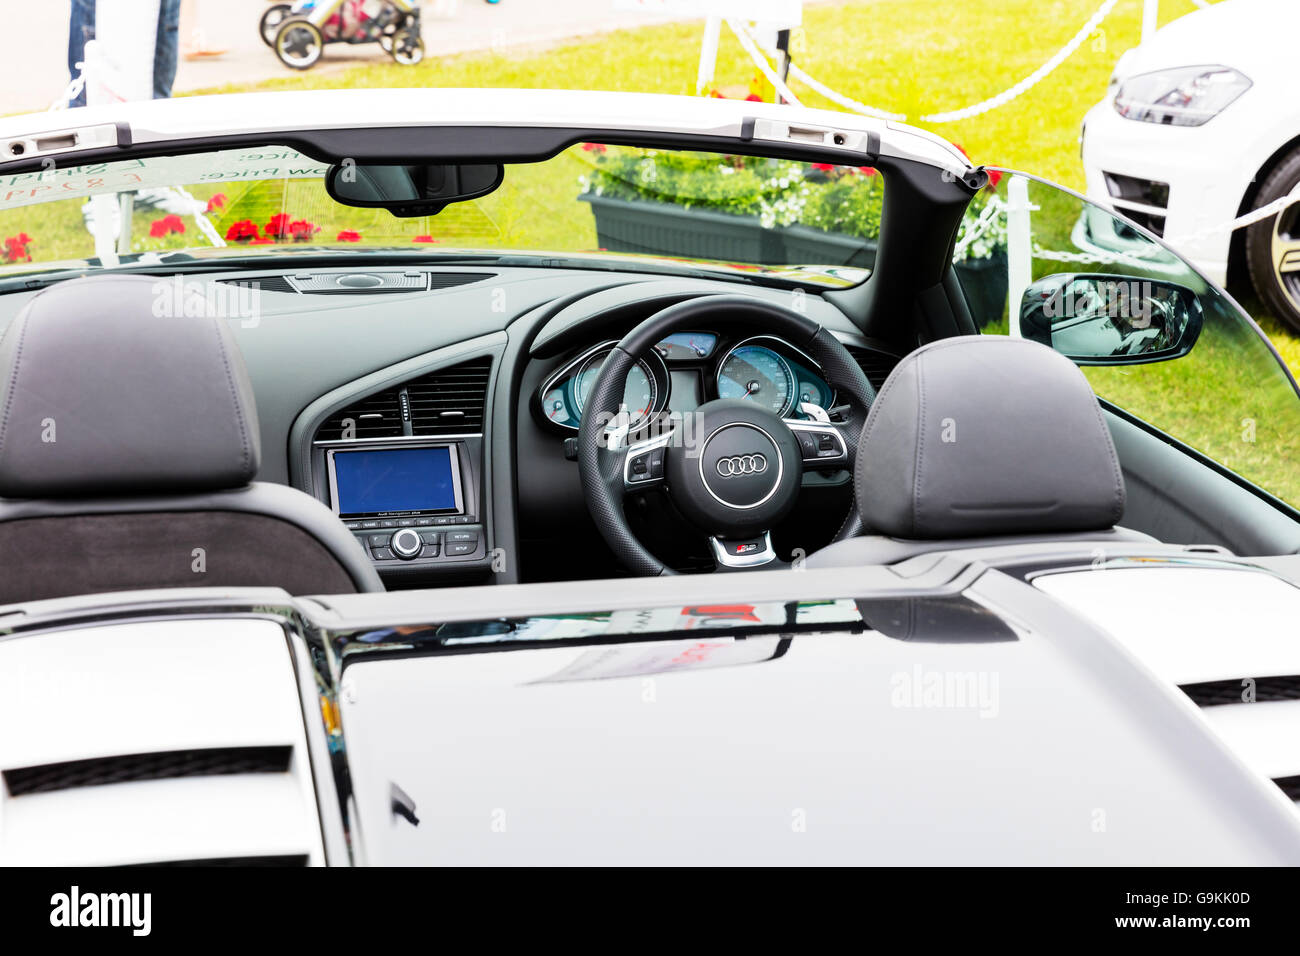 Audi R8 Car Interior Inside Cabriolet Vehicle Sport Sports Car Cars